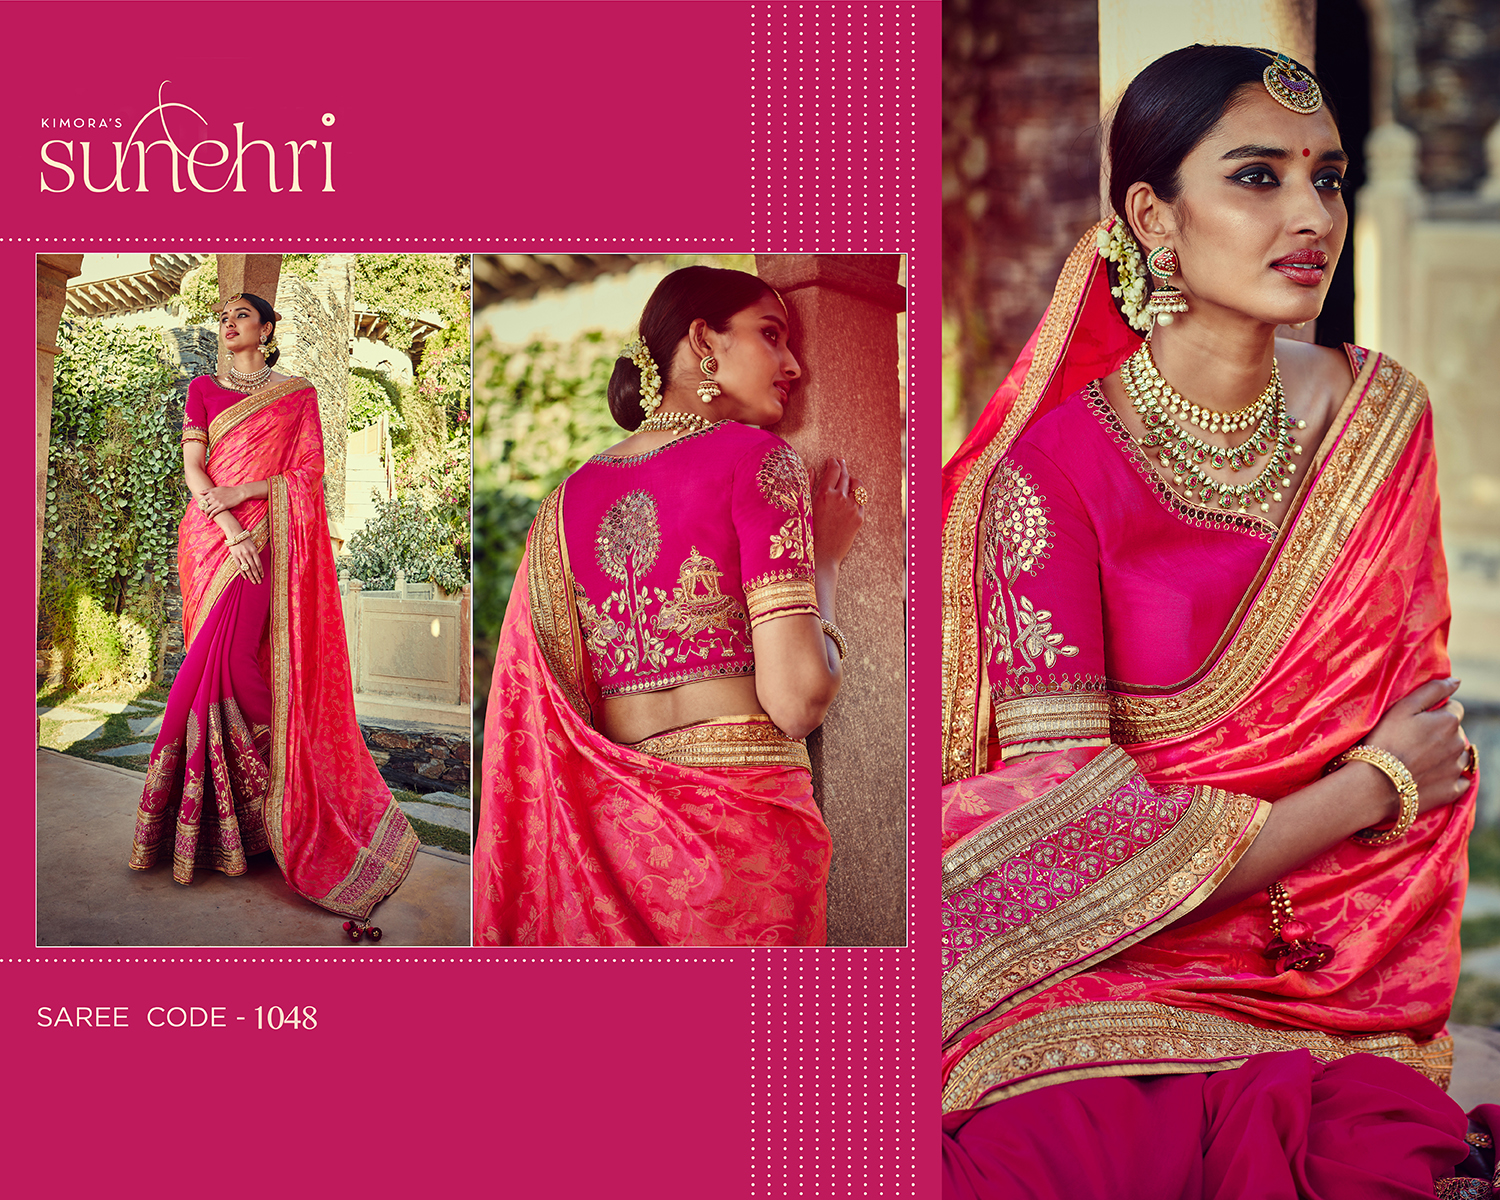 Sunehri v4 Bridal Saree 1048